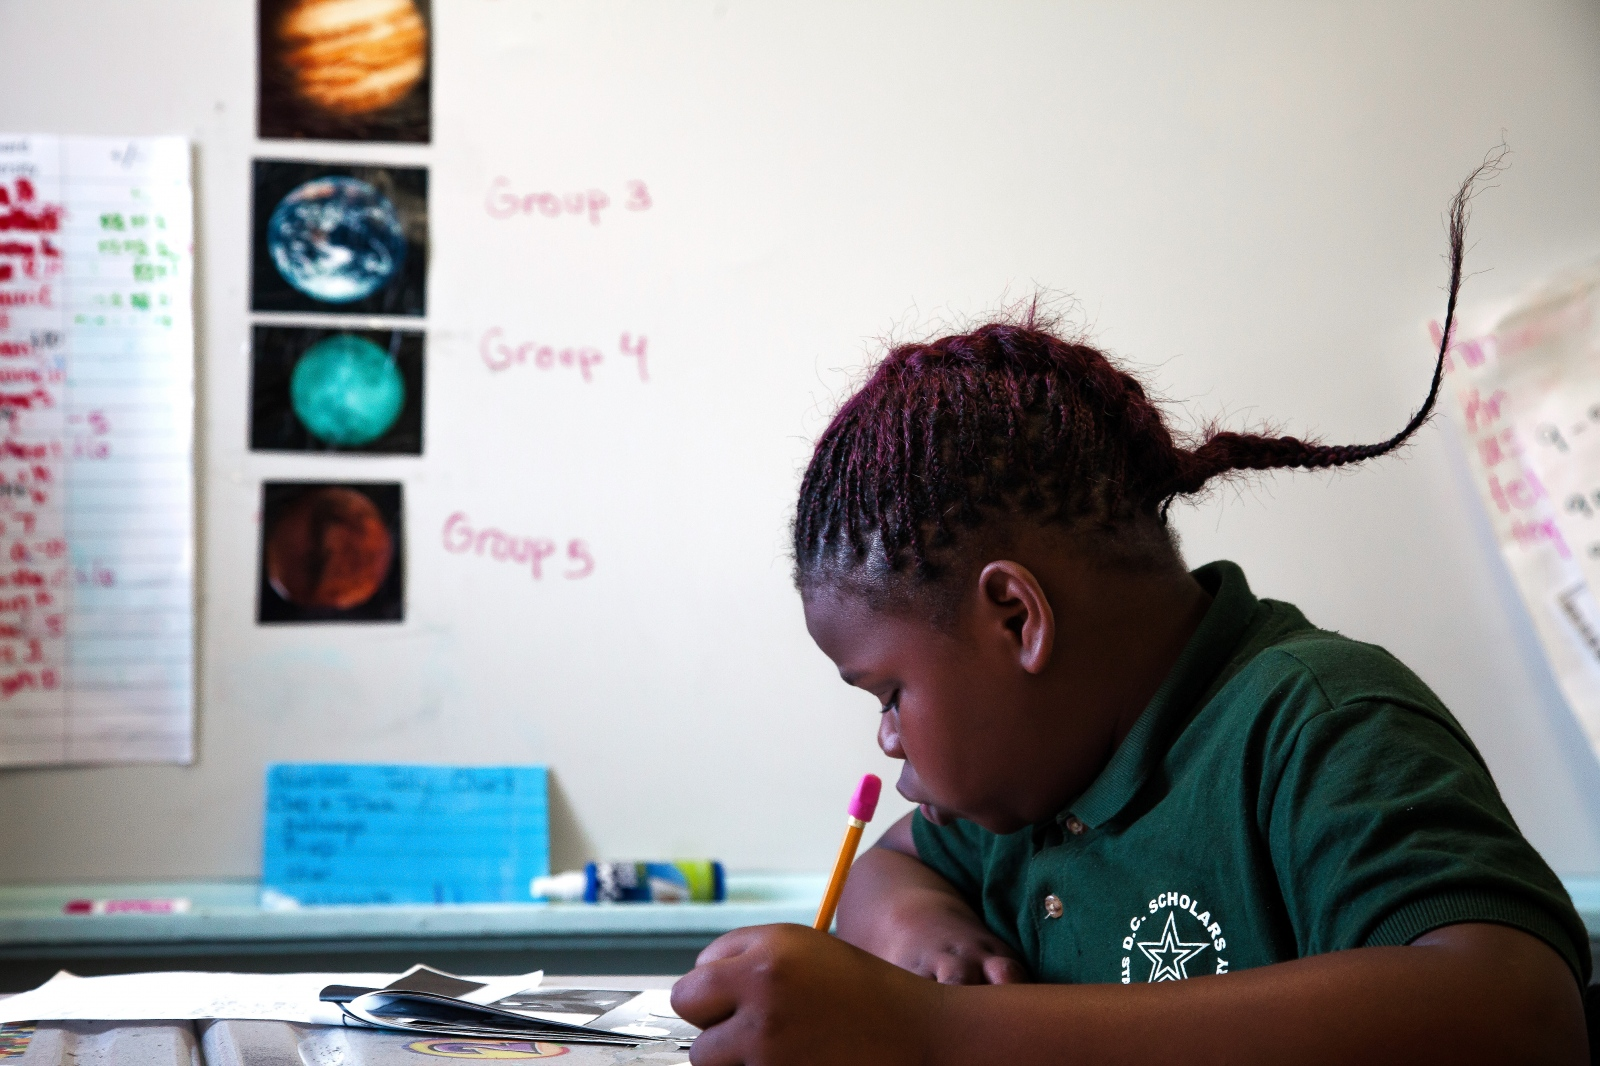 A student sits at her desk and works on homework during class time.